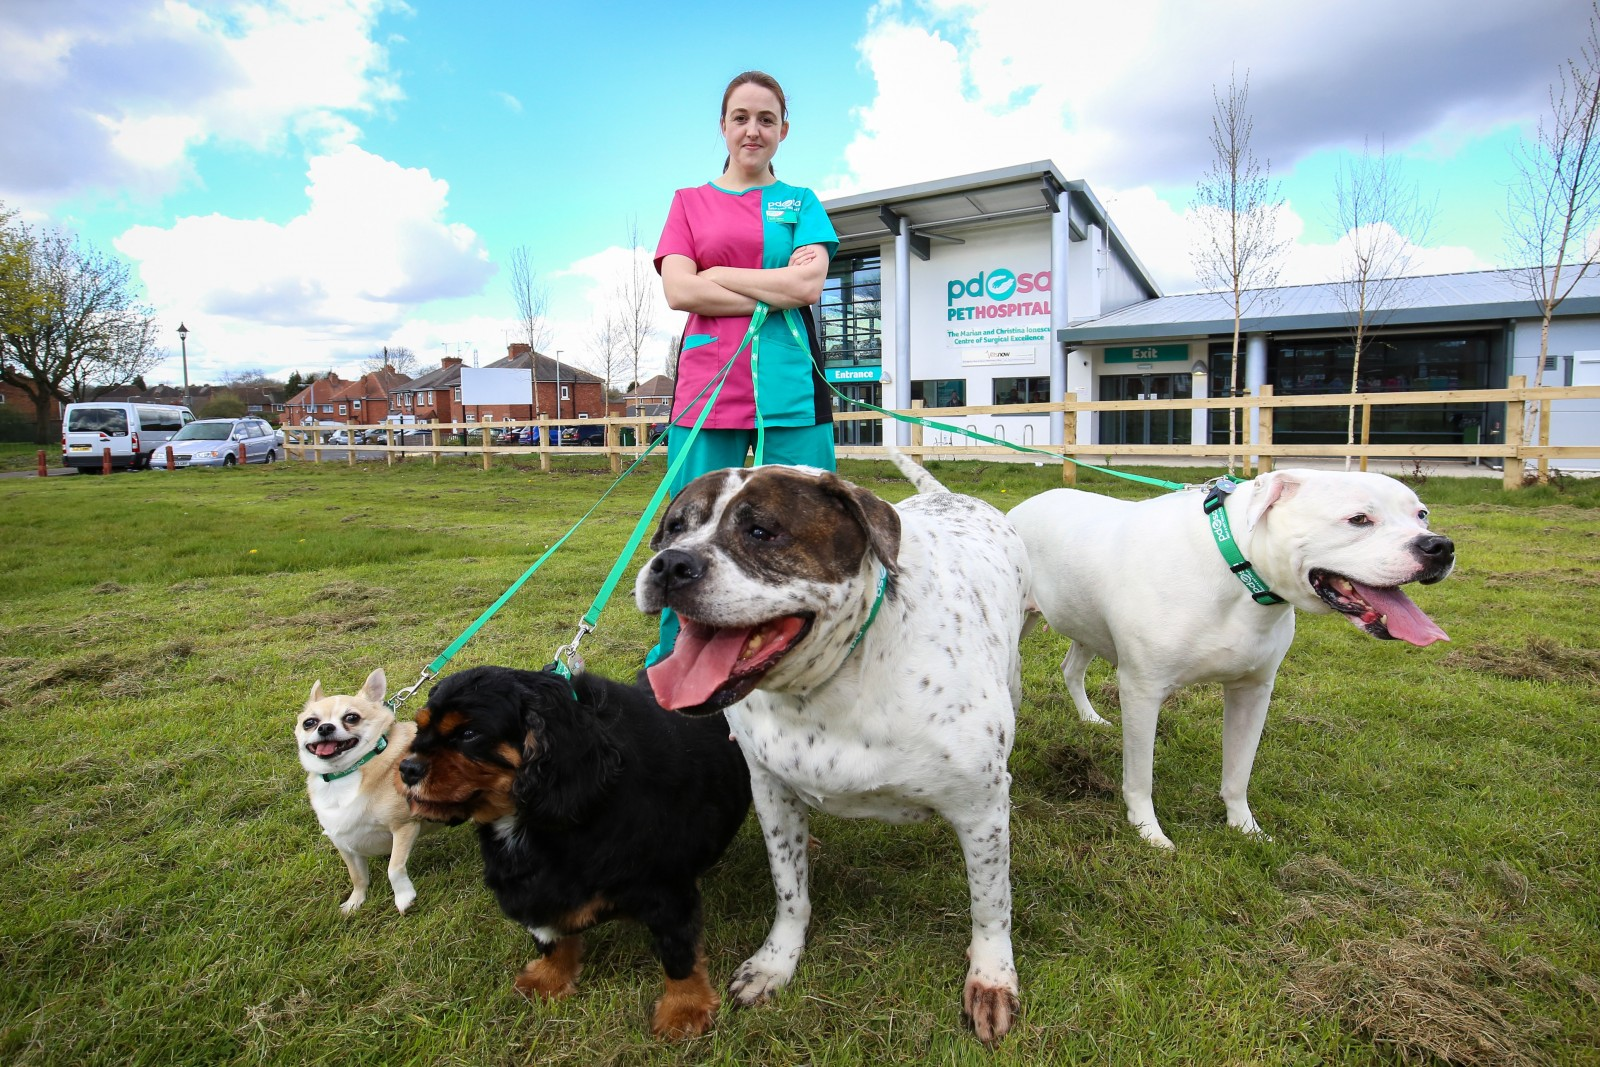 Meet 13 of Britain's FATTEST PETS who are heading to their very own SLIMMING CLUB…